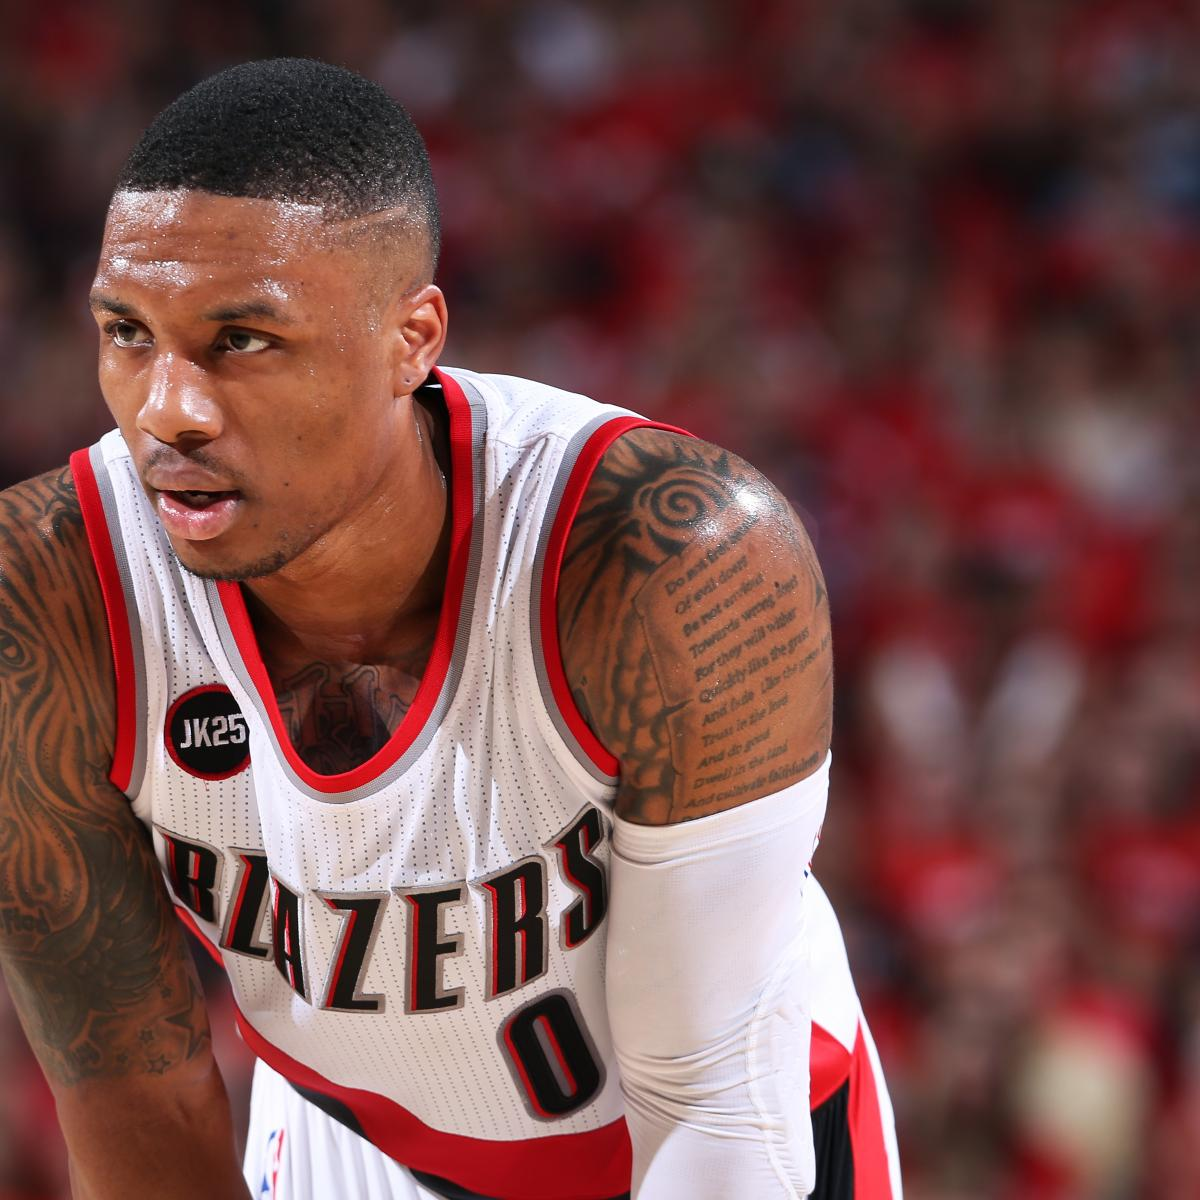 Portland Blazers Roster 2012: Why Damian Lillard Holds All The Cards To The Portland